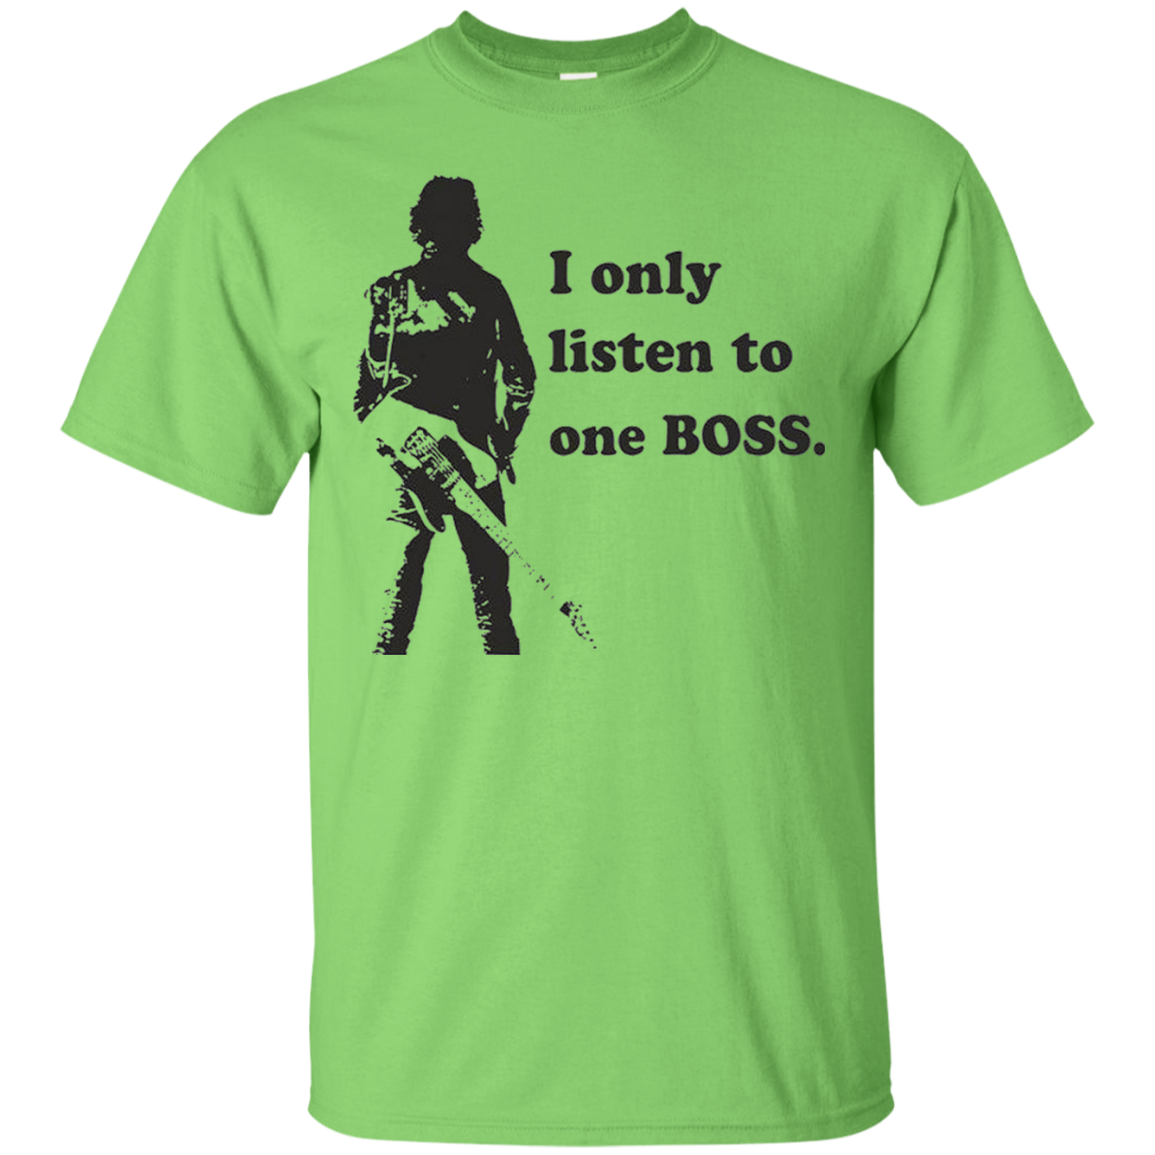 I only listen to one boss Shirt-funny music shirts